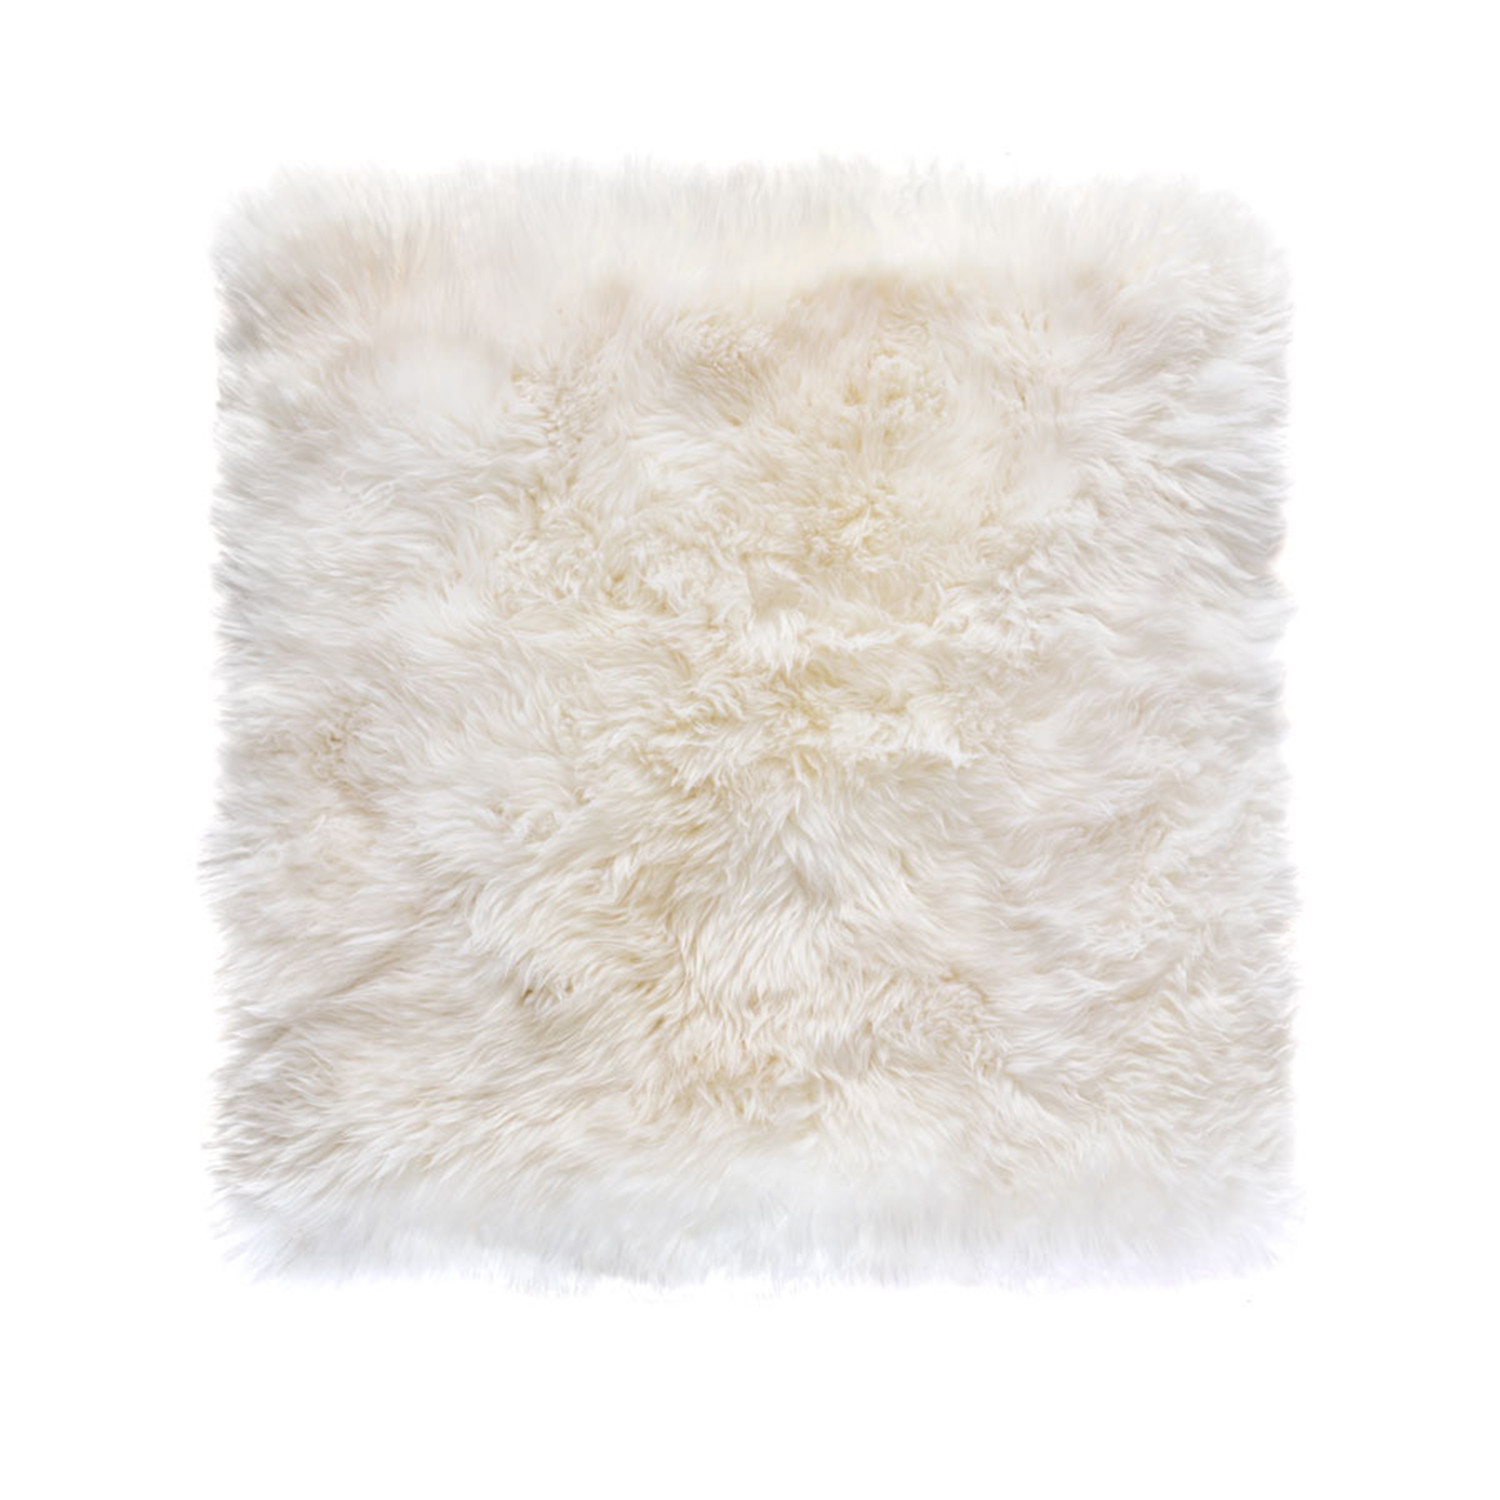 Sheepskin Rug Square: New Zealand Sheepskin Rug // Square (White)